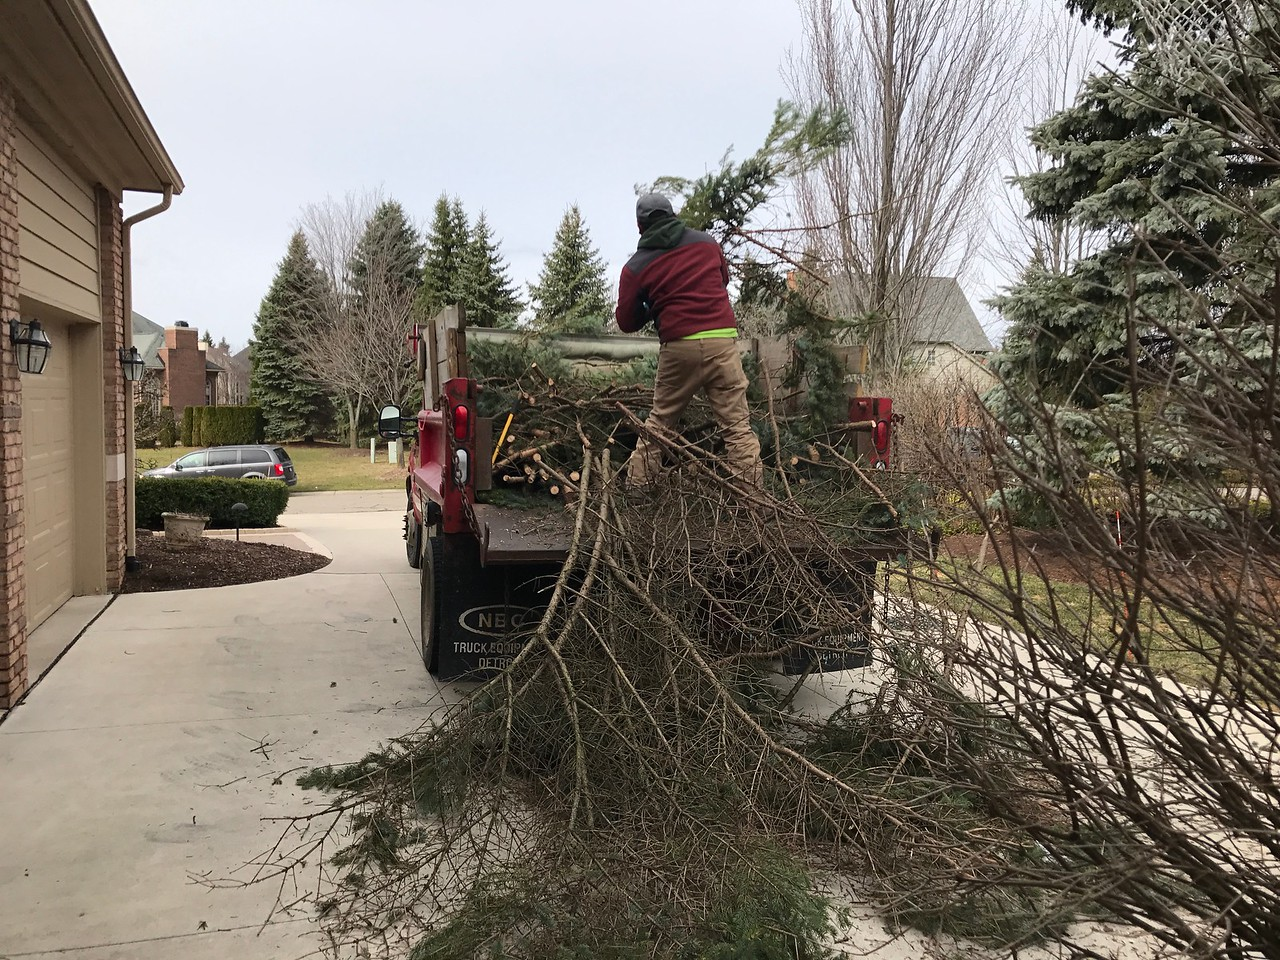 A crew from Greener Grounds Outdoor Solutions works to remove fallen evergreen trees in Oakland County. Photo by Stephen Frye / Digital First Media.